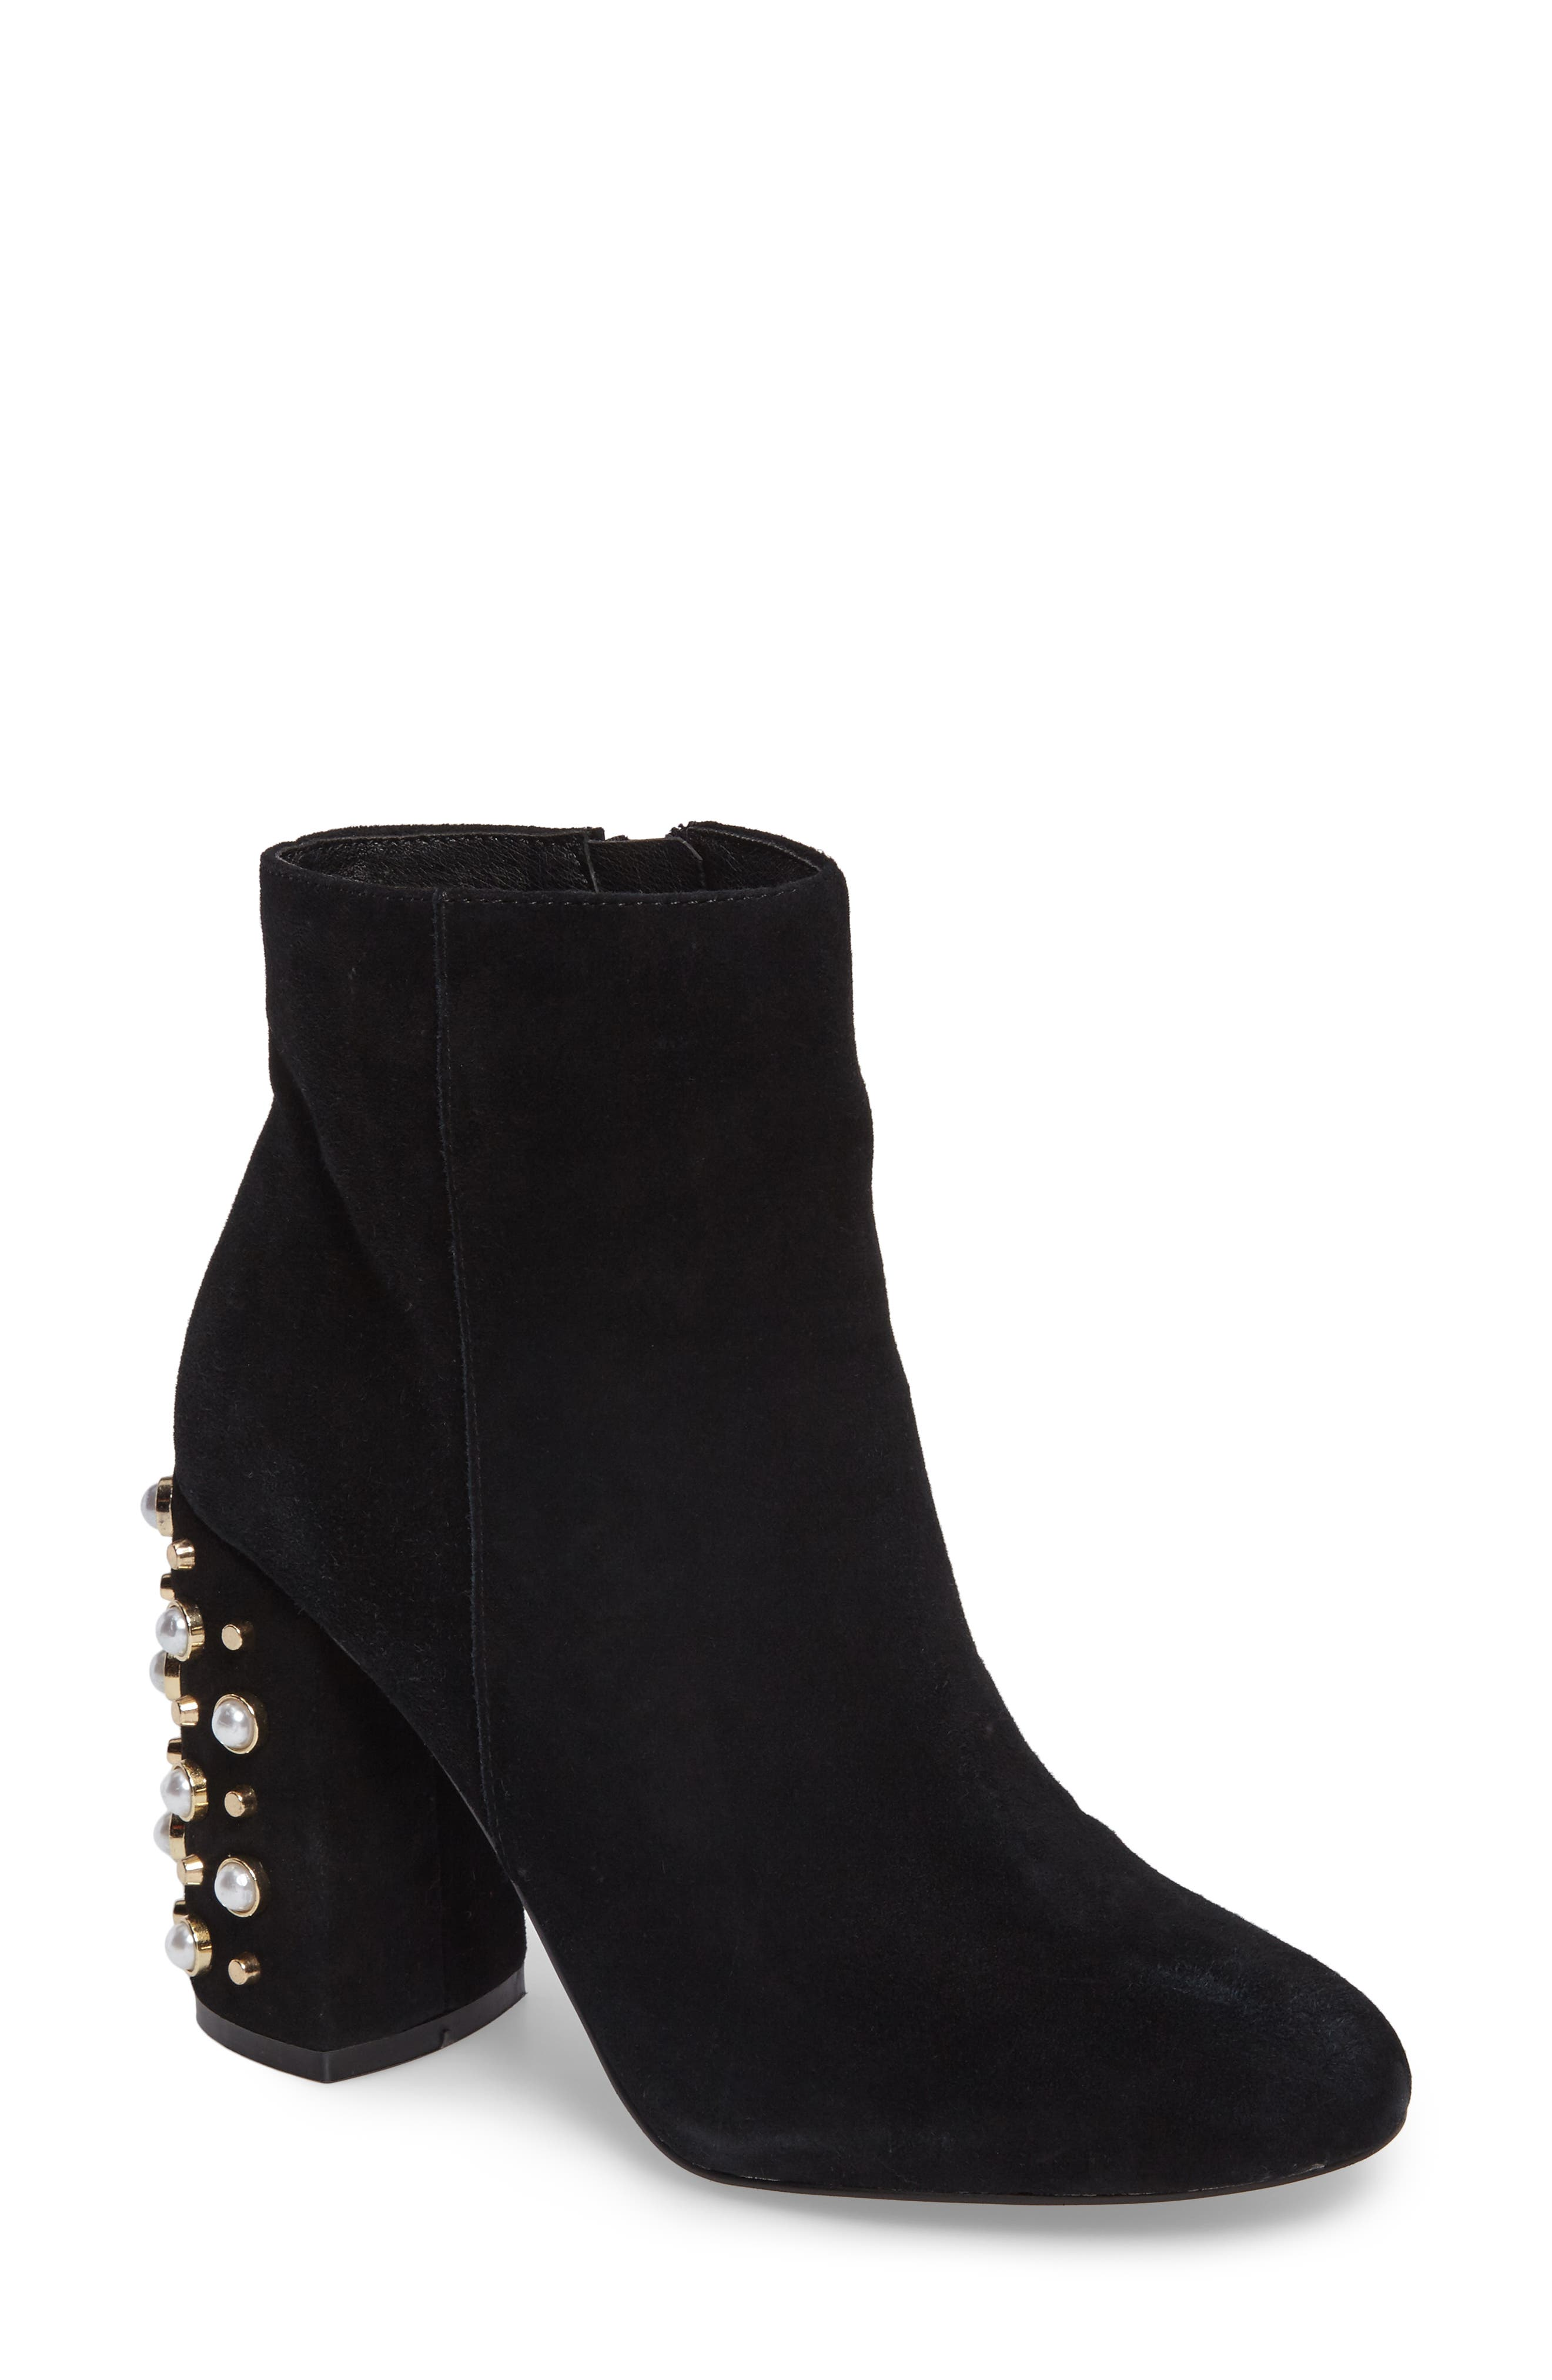 Yvette Embellished Bootie,                             Main thumbnail 1, color,                             006